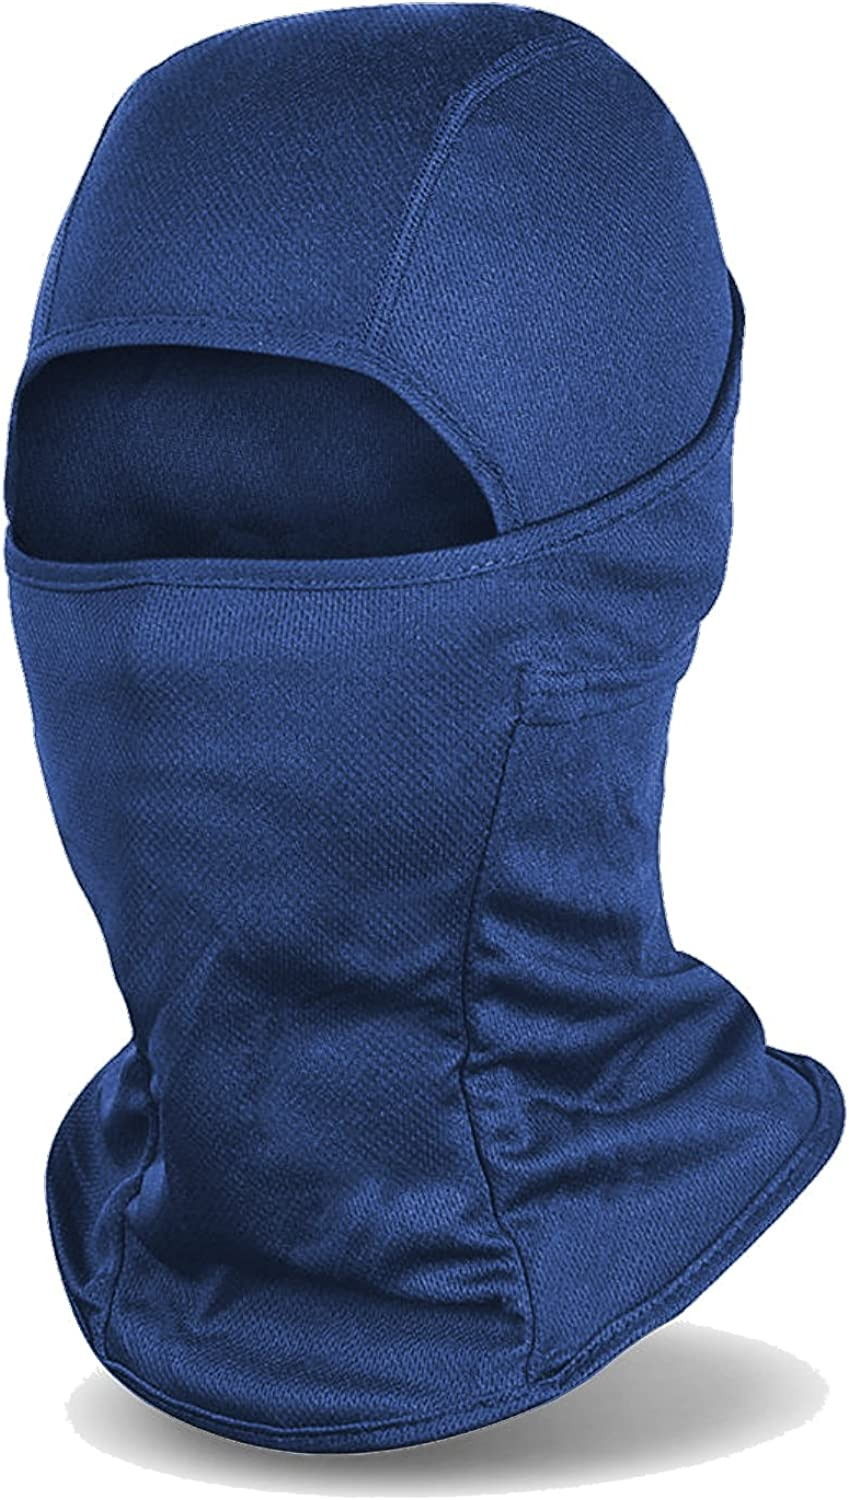 Balaclava Windproof Cheap super special price Ski Mask Cold Sales for sale N Face Weather Motorcycle